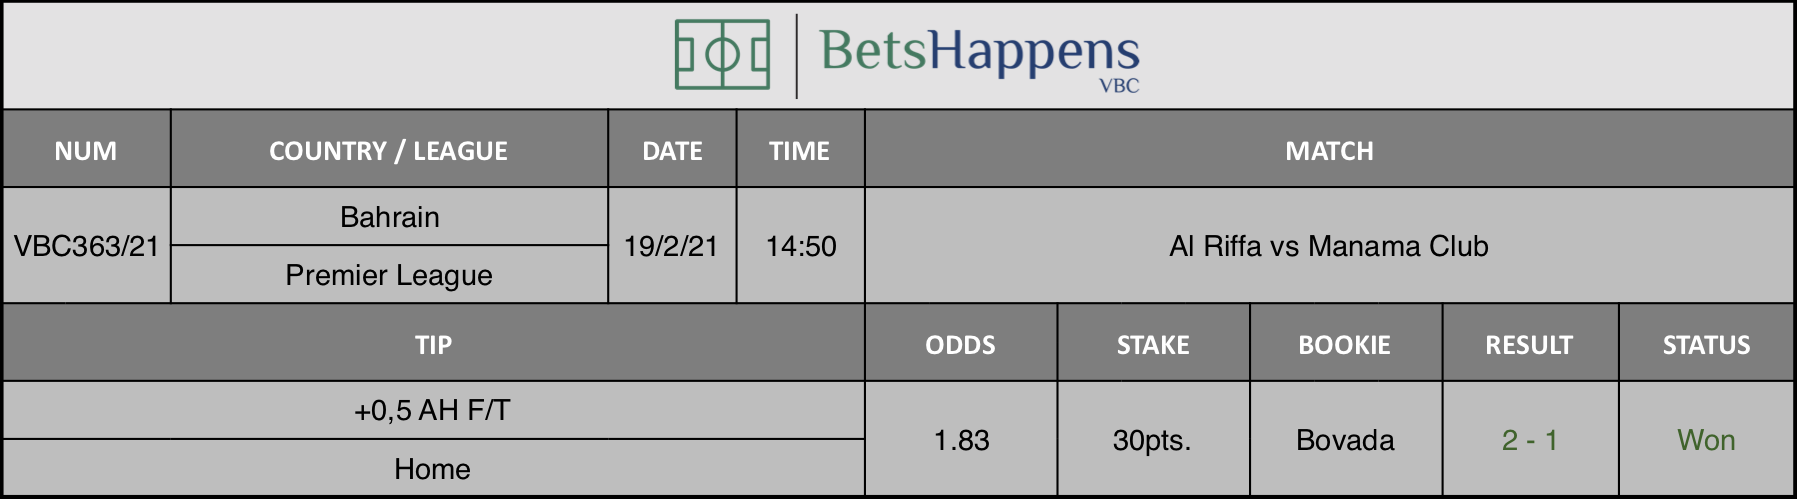 Results of our tip for the Al Riffa vs Manama Club match where +0,5 AH F/T Home is recommended.